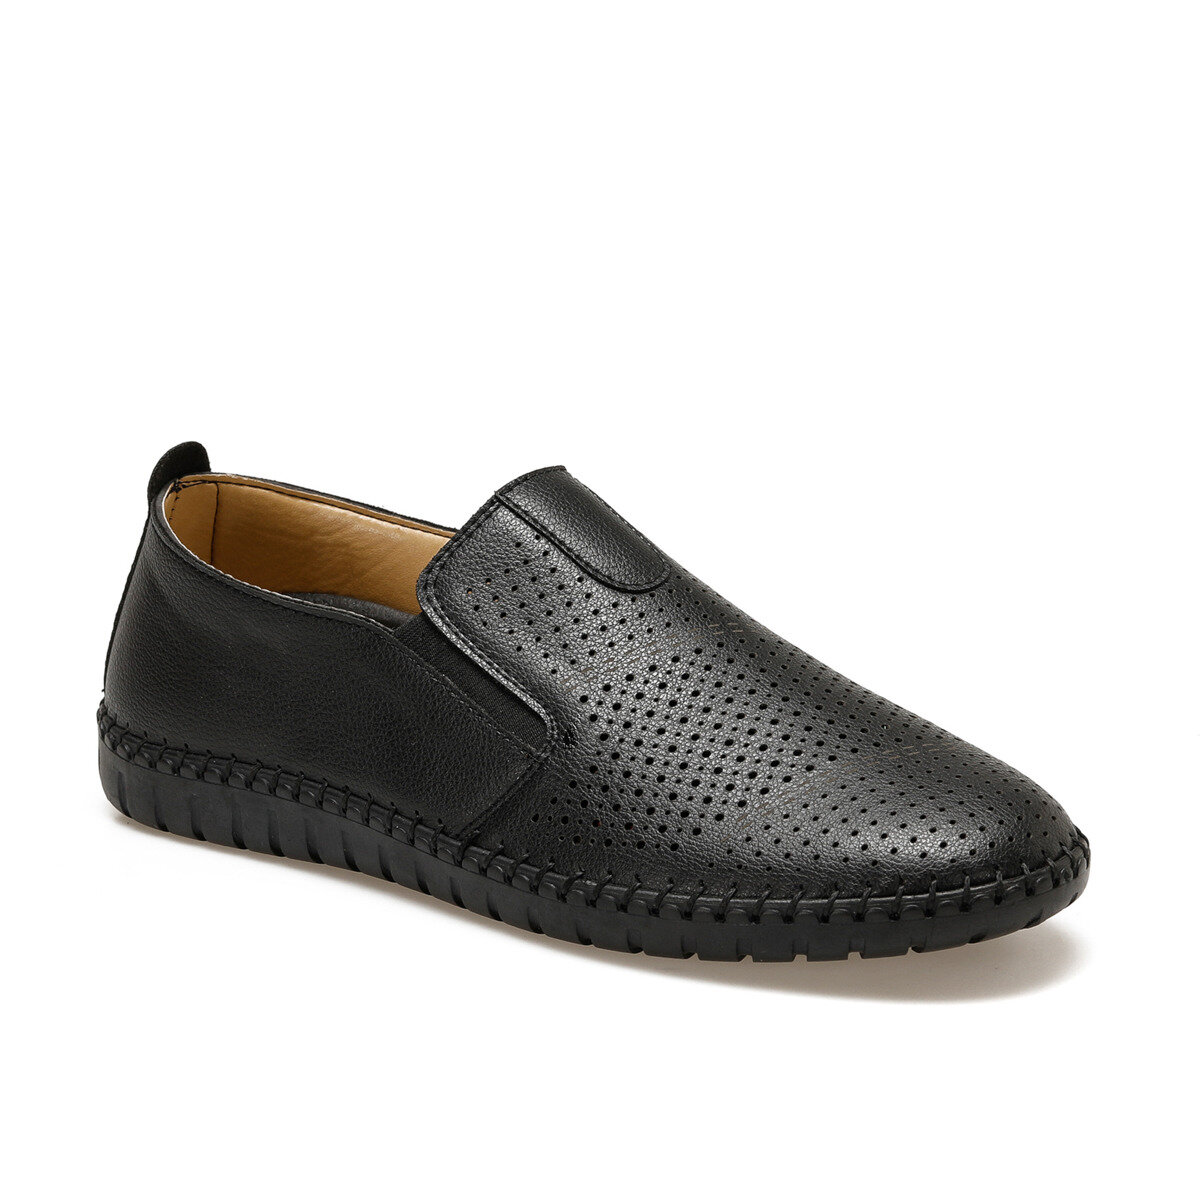 FLO AL-20 Black Men 'S Classic Shoes Flexall